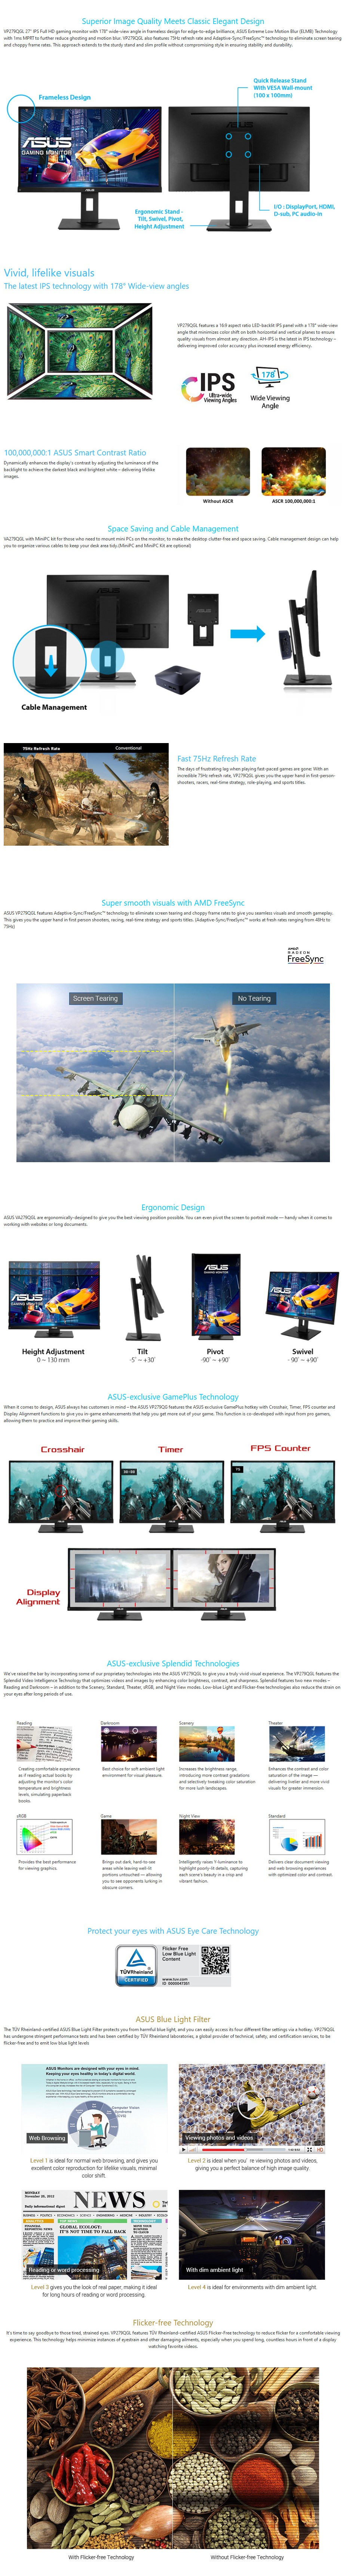 asus-vp279qgl-27-75hz-full-hd-1ms-freesync-ips-gaming-monitor-ac34965-8.jpg